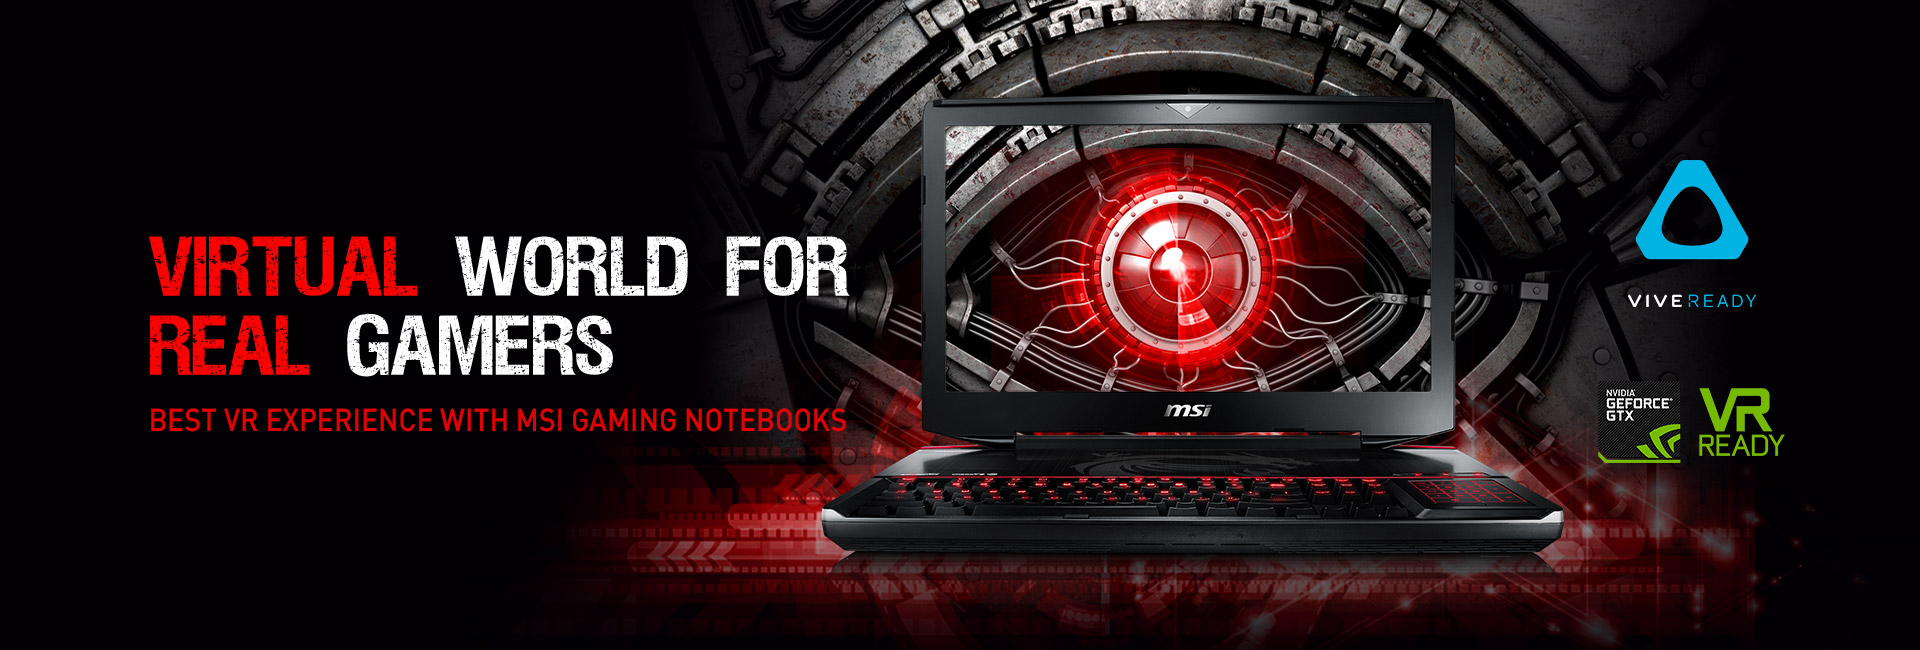 how to send msi laptop for service